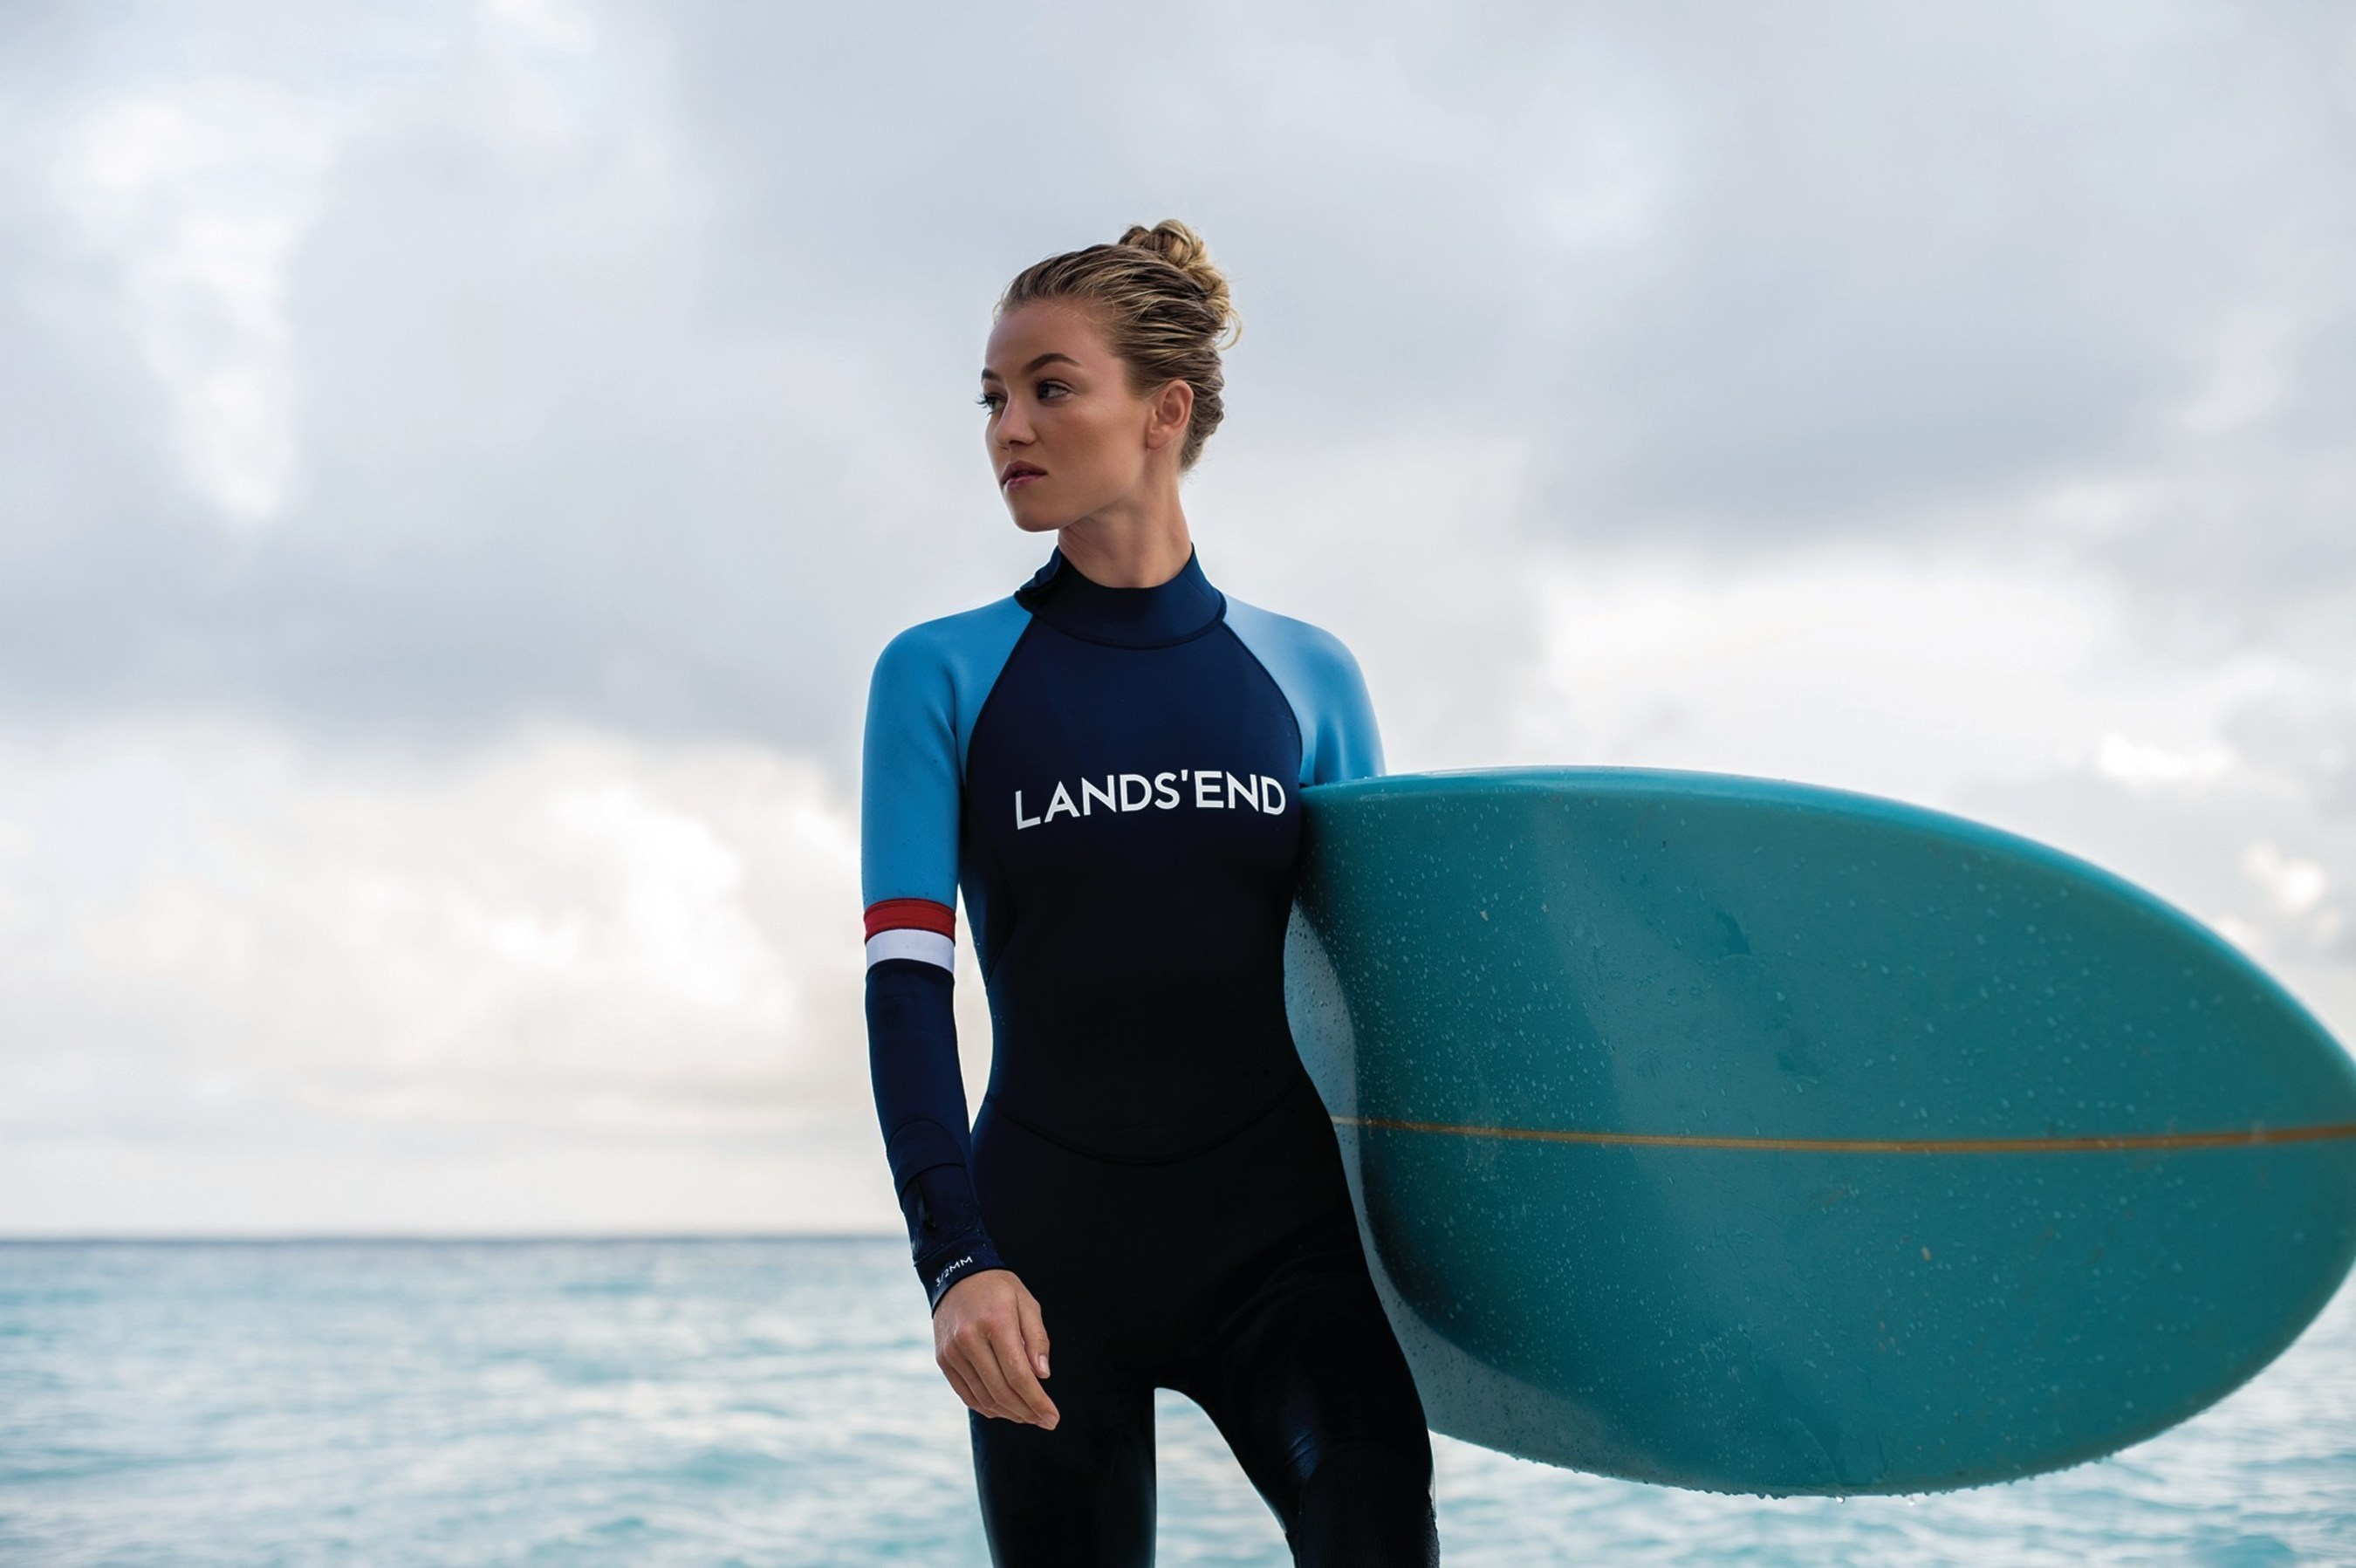 Introducing the Lands' End Surf collection, fully functional pieces from land to sea, high-performance to athleisure, available at www.landsendsport.com